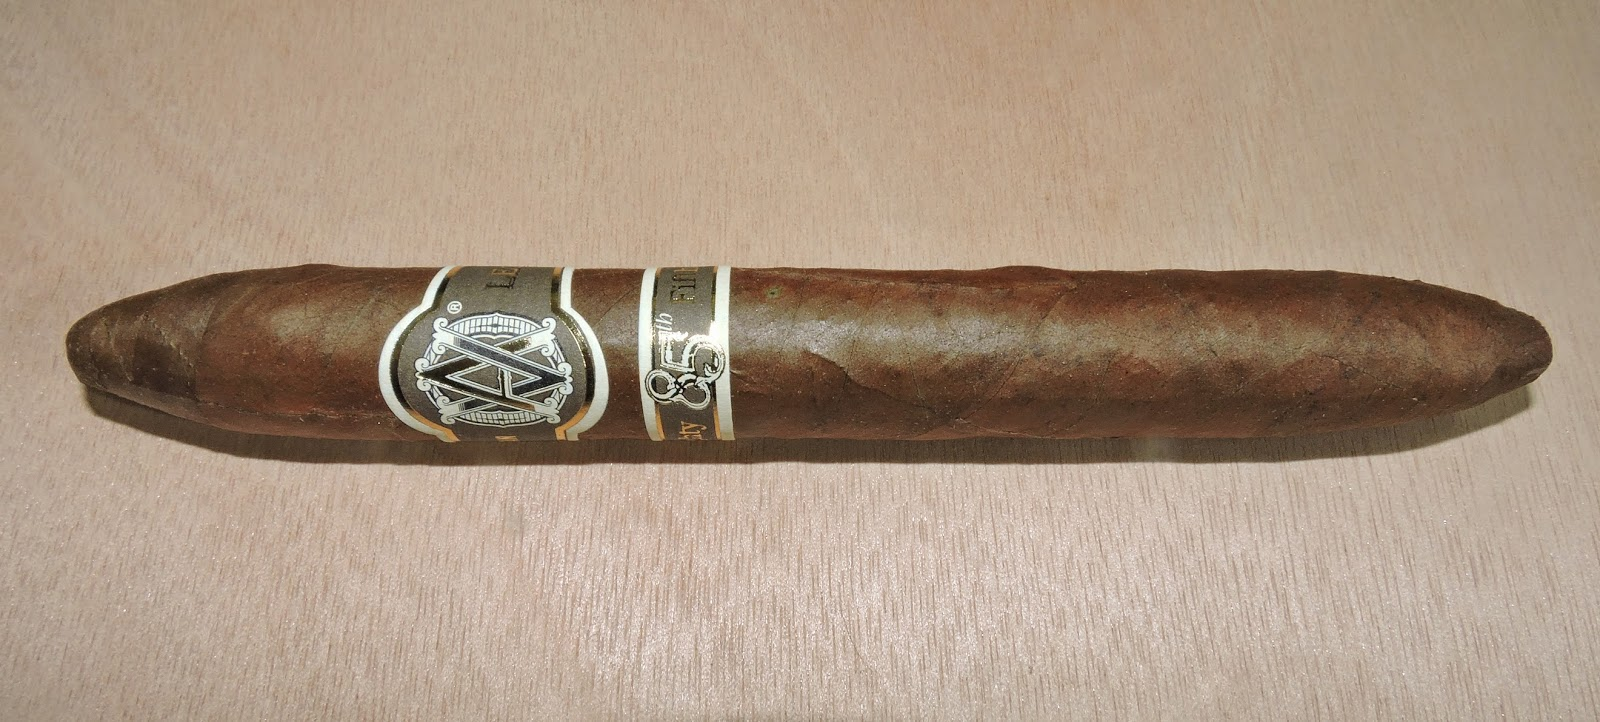 Assessment Update: Avo Limited Edition 2011 85th Anniversary (Part of Avo's Greatest Hits Sampler)